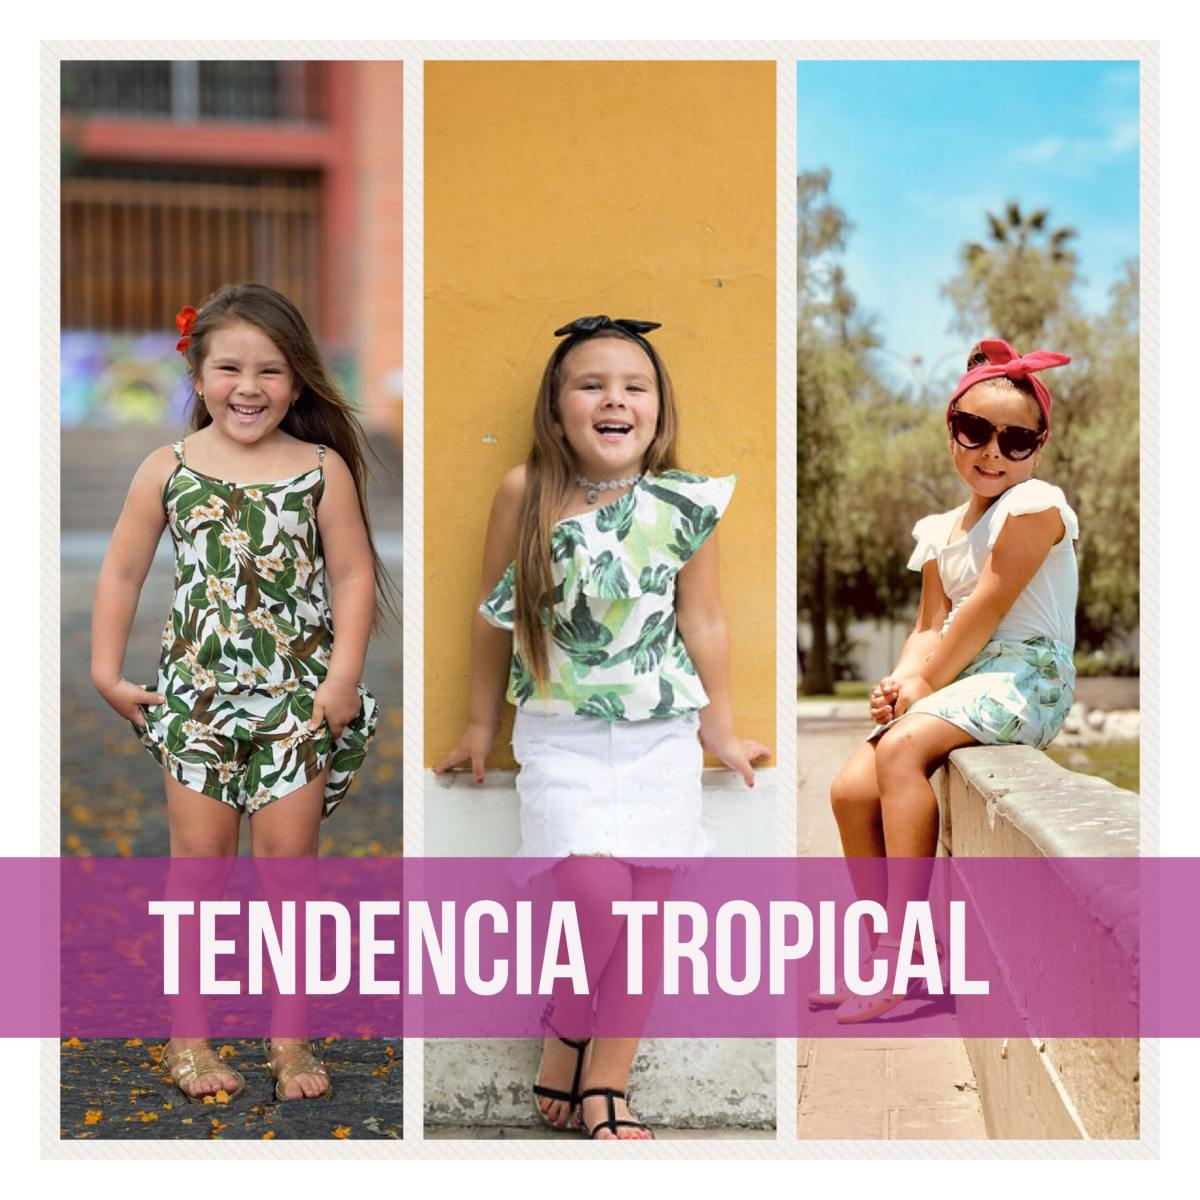 ¡ Tendencia tropical !